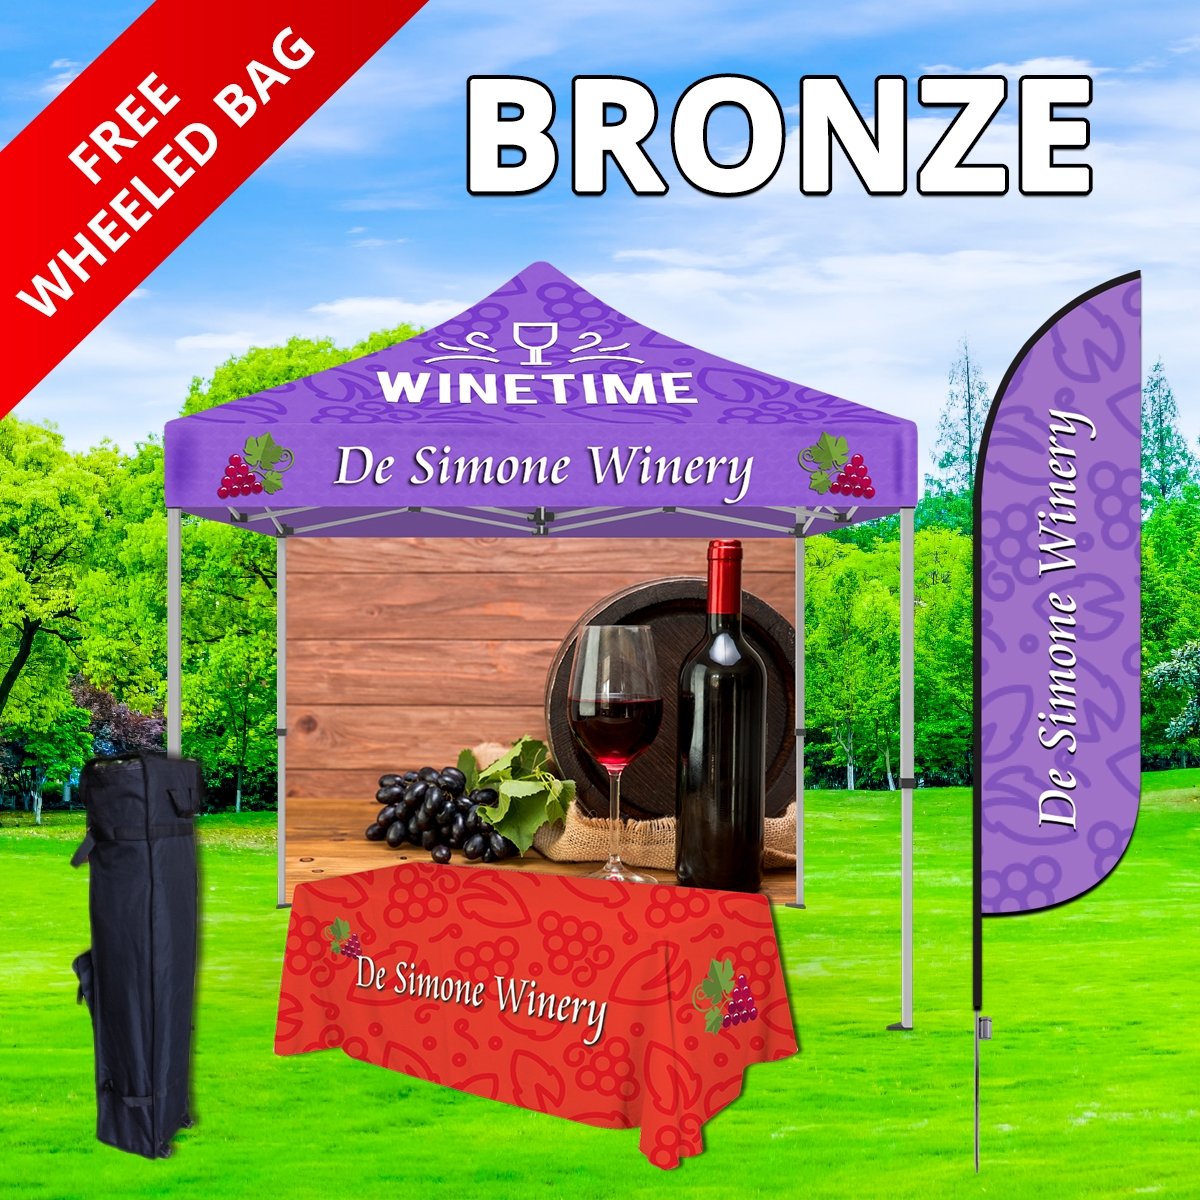 Bronze Tier Event Package - 10Ft. Steel Tent with Full Color Dye Sublimated (1) 6ft Table Throw, (1) Canopy and (1) Back Wall (1) 8.5 Ft. Single Sided with Spike Base (1) Free Wheeled Bag